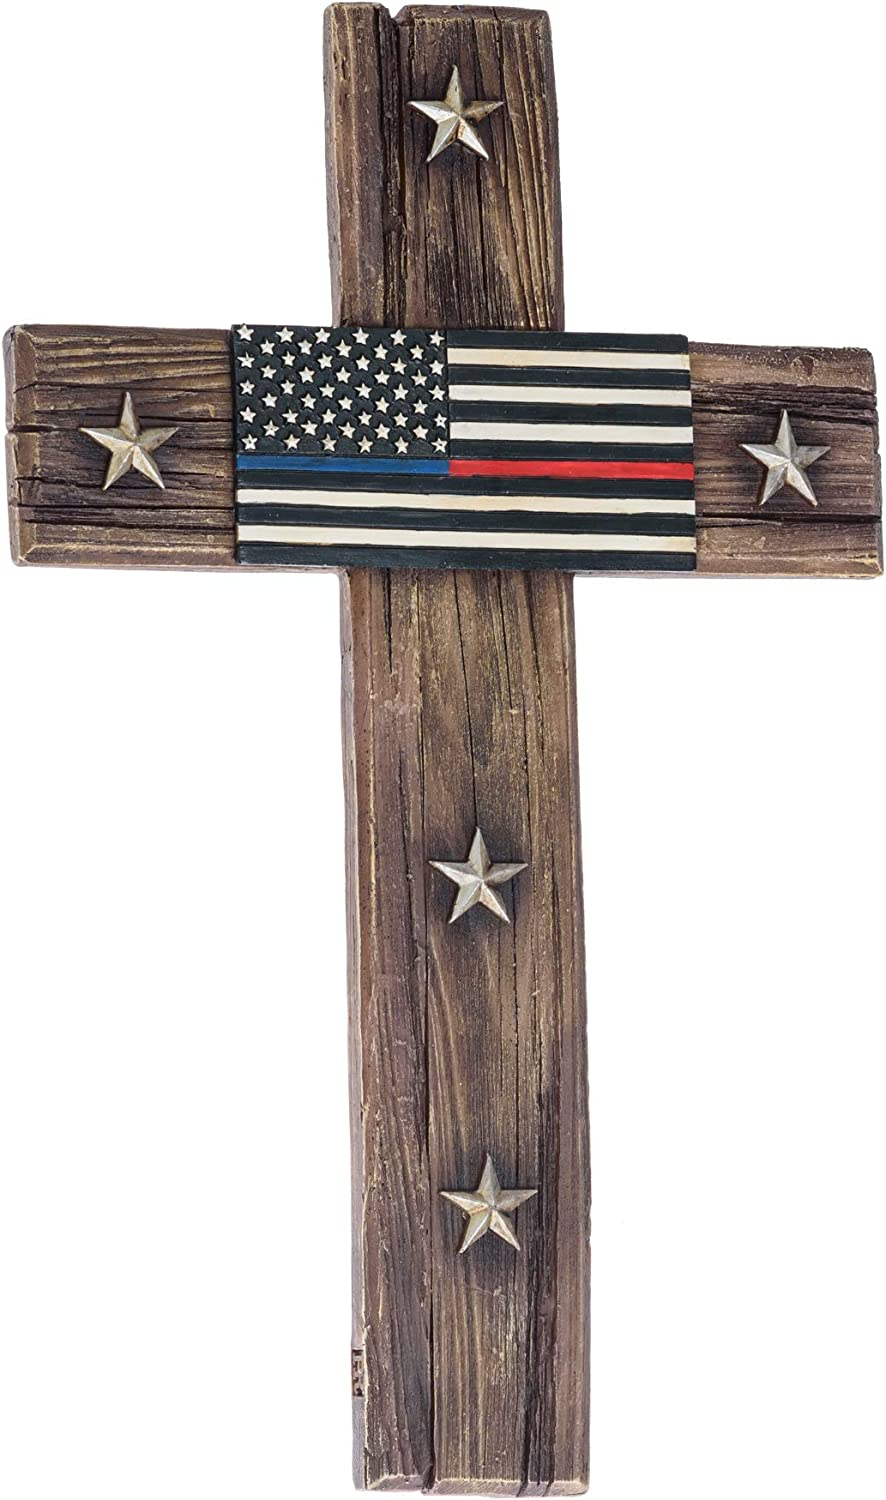 American Flag Design Cross Decor for Wall - US Flags Outdoor Inspirational Cross - Red Blue Cross Wall Home Decor and Gifts - Red Blue Line Cross Roman Catholic Crucifix